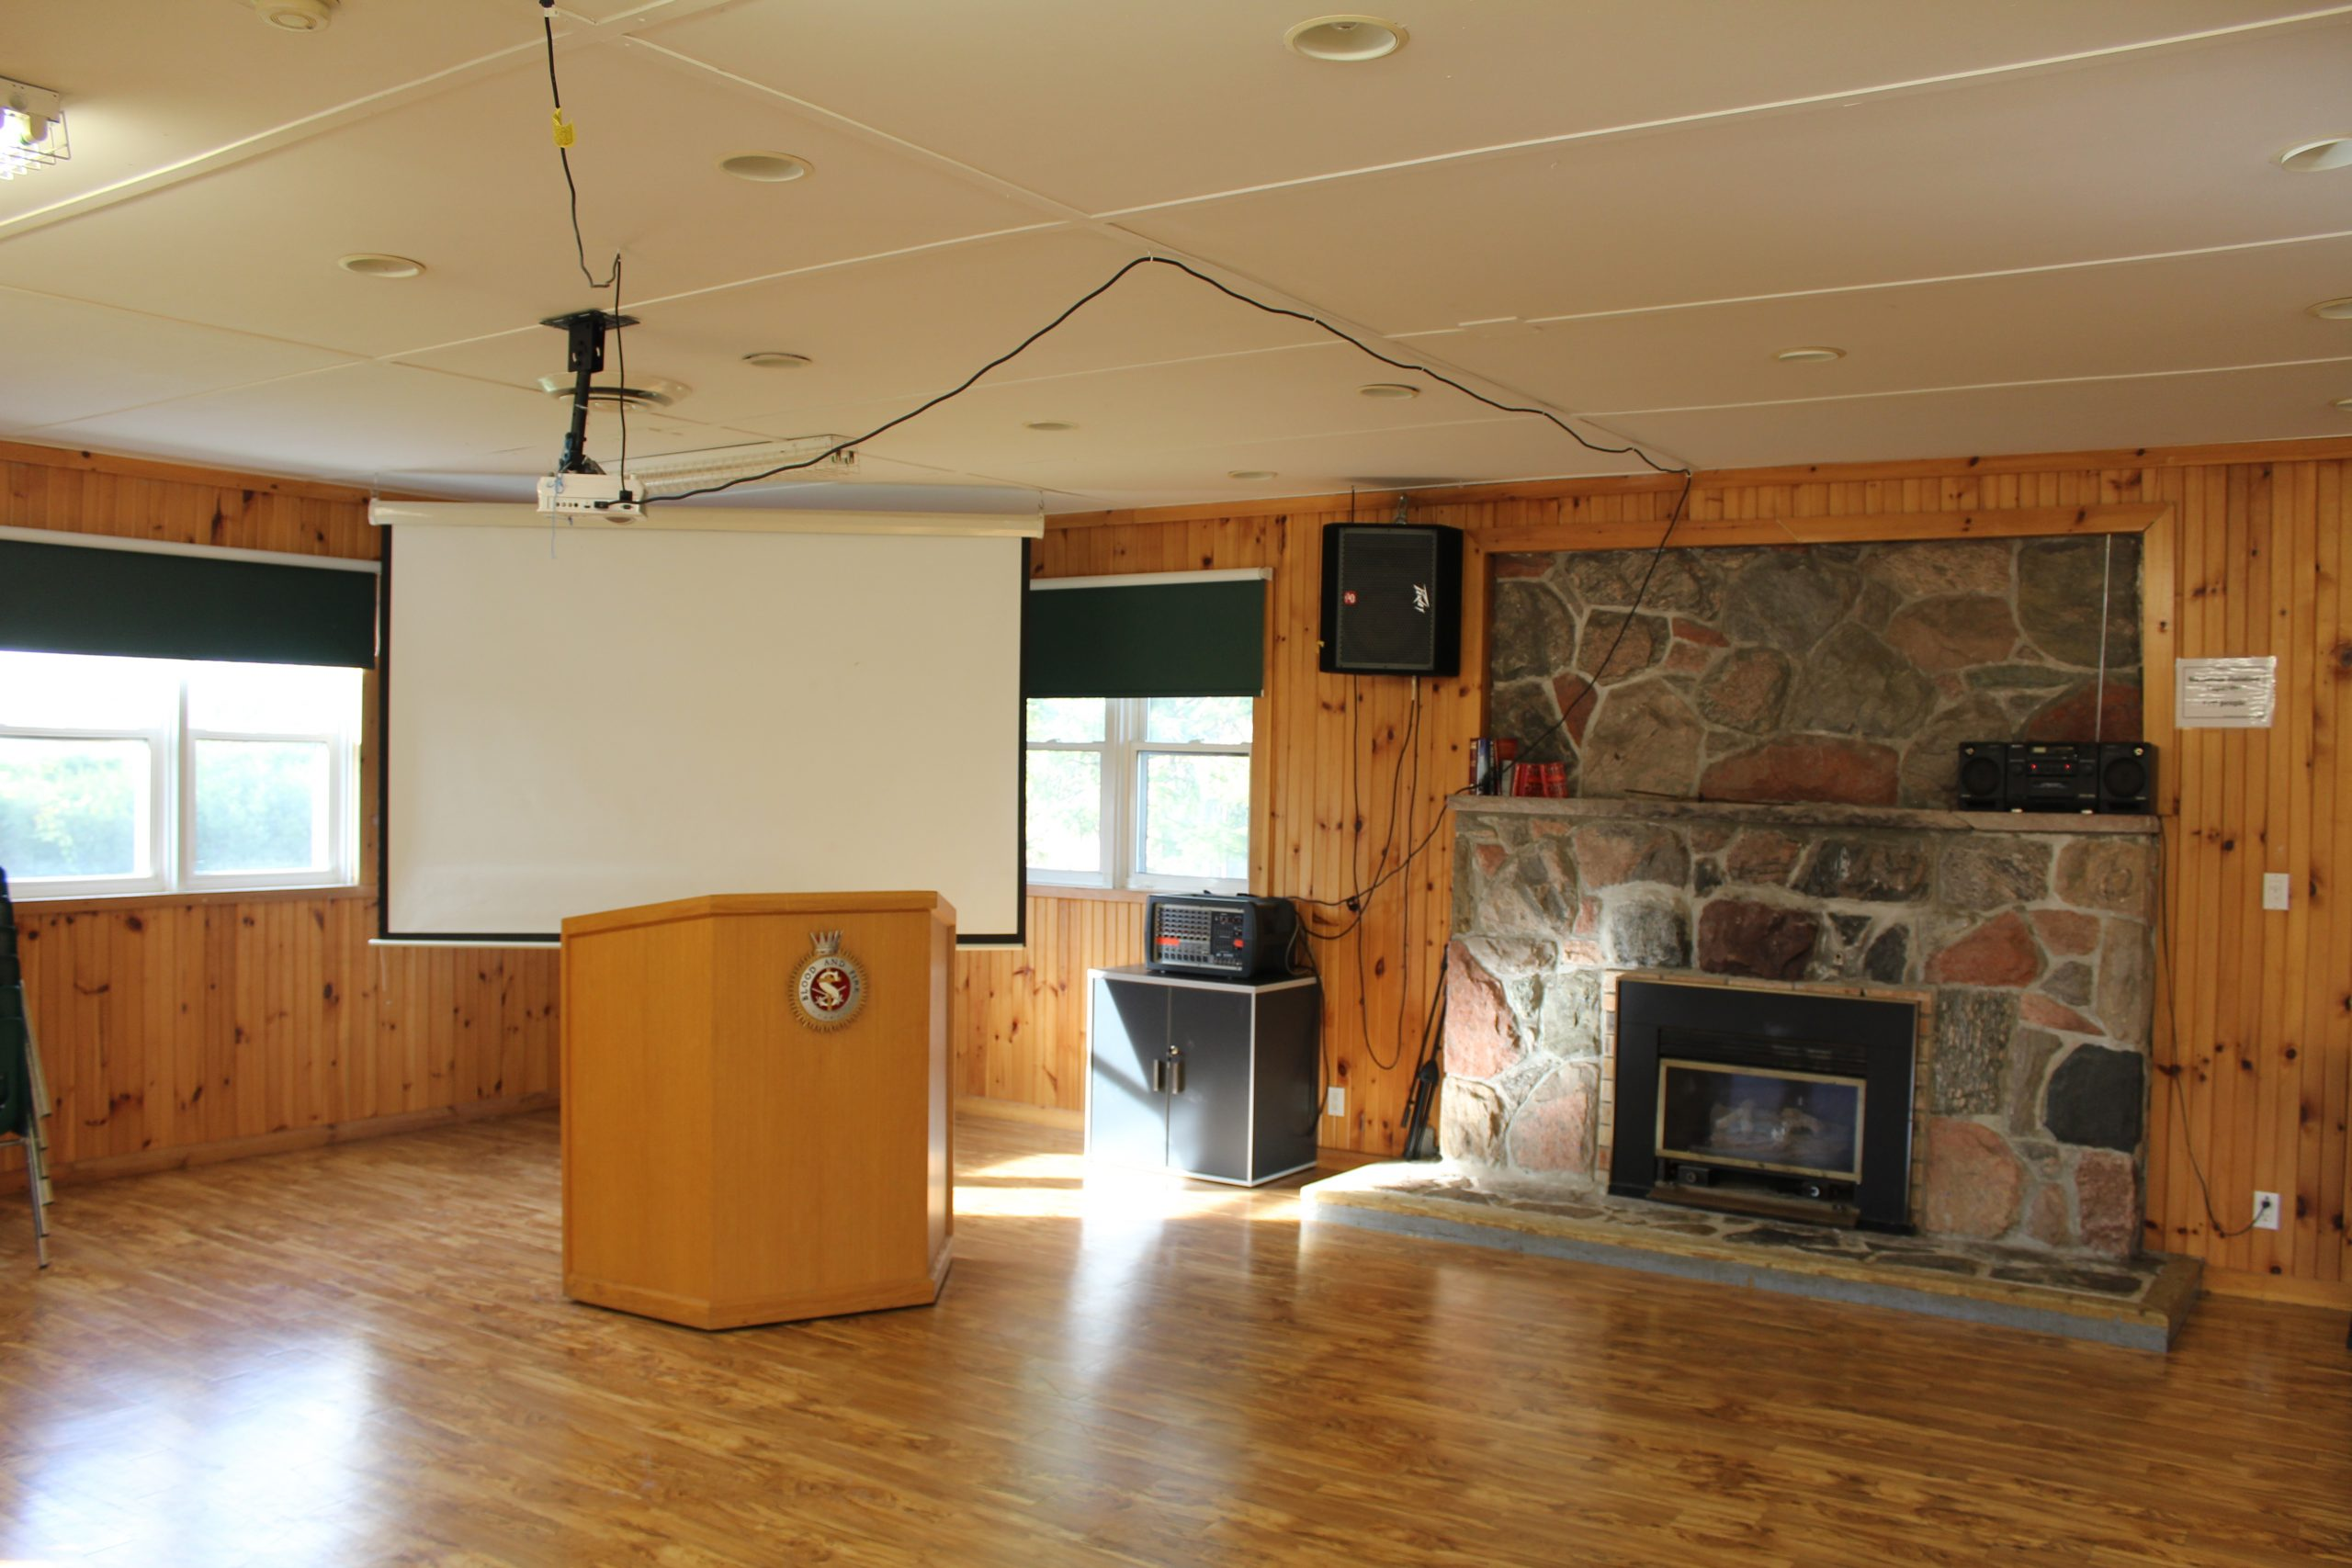 Rondeau Hall Interior Fireplace and Projector Screen